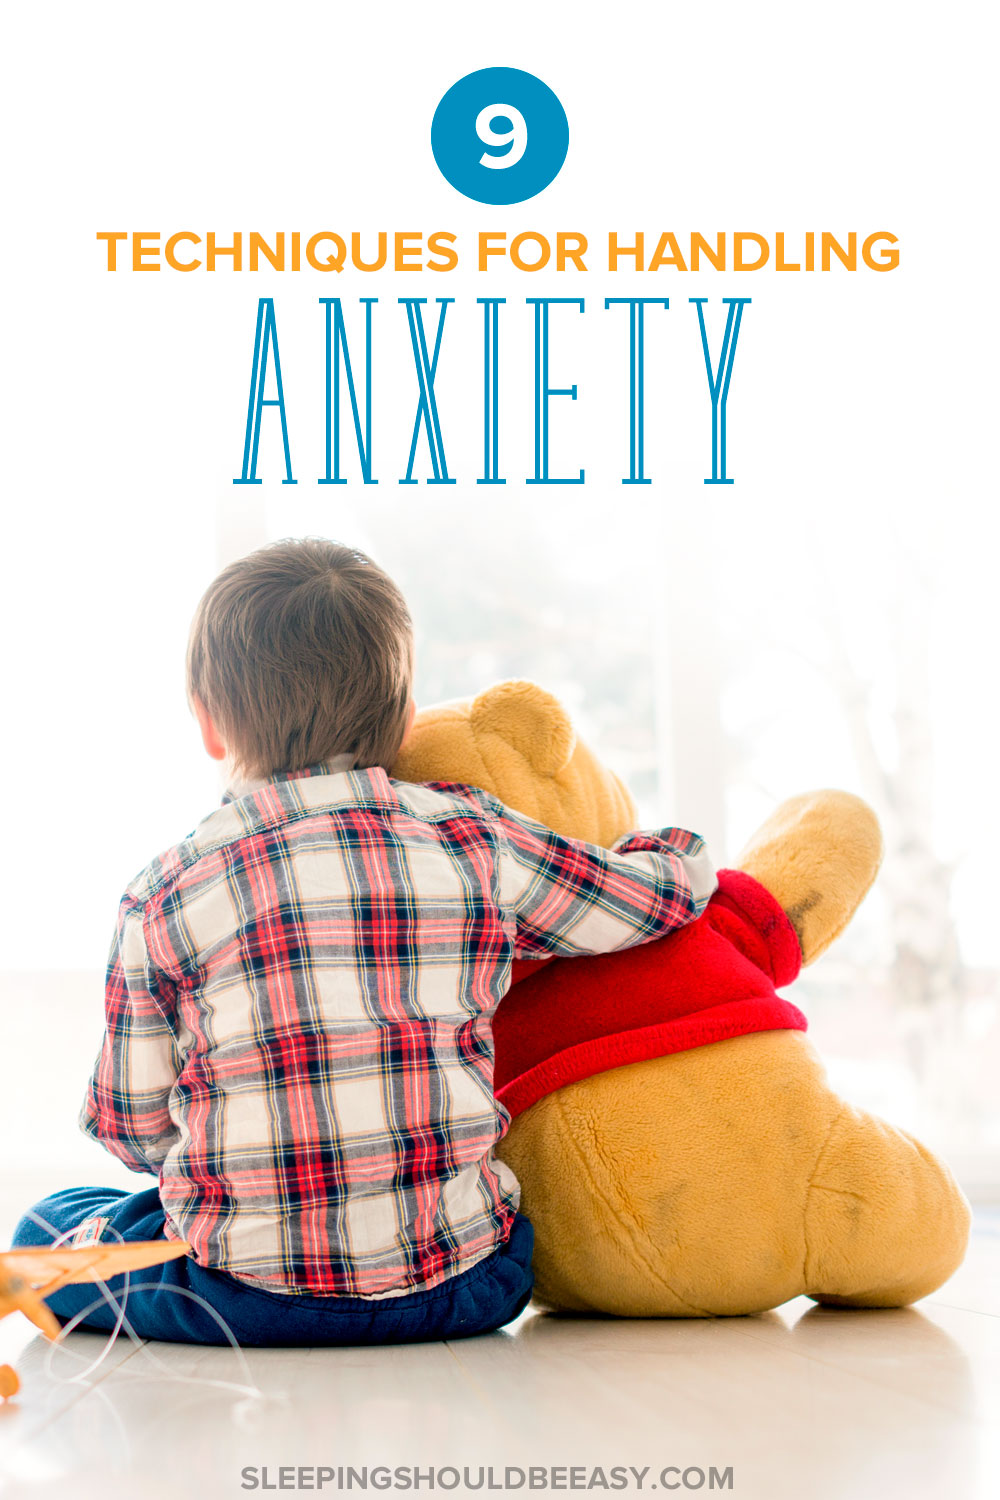 9 techniques for handling anxiety: Little boy sitting with his back turned, holding a teddy bear